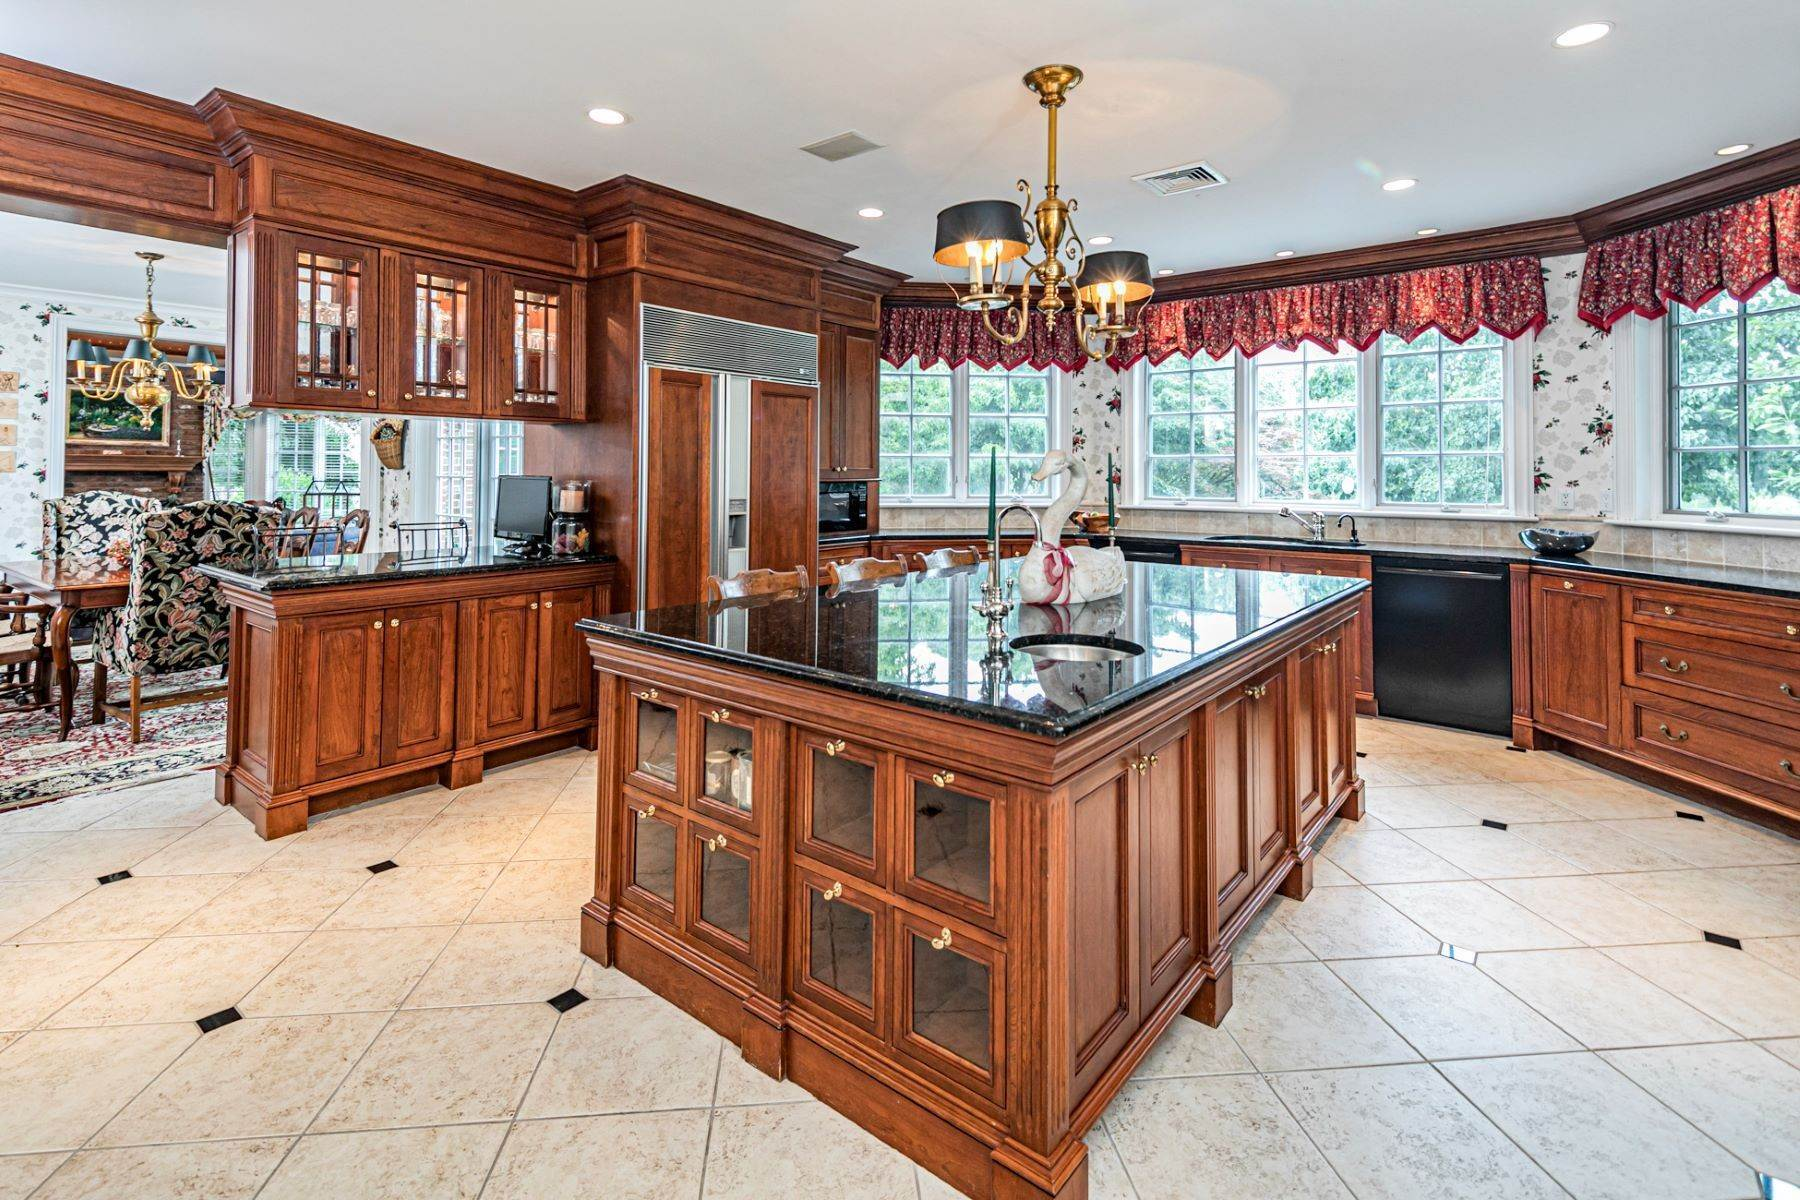 8. Single Family Homes for Sale at Private Compound with Every Amenity Imaginable 82 Aunt Molly Road, Hopewell, New Jersey 08525 United States